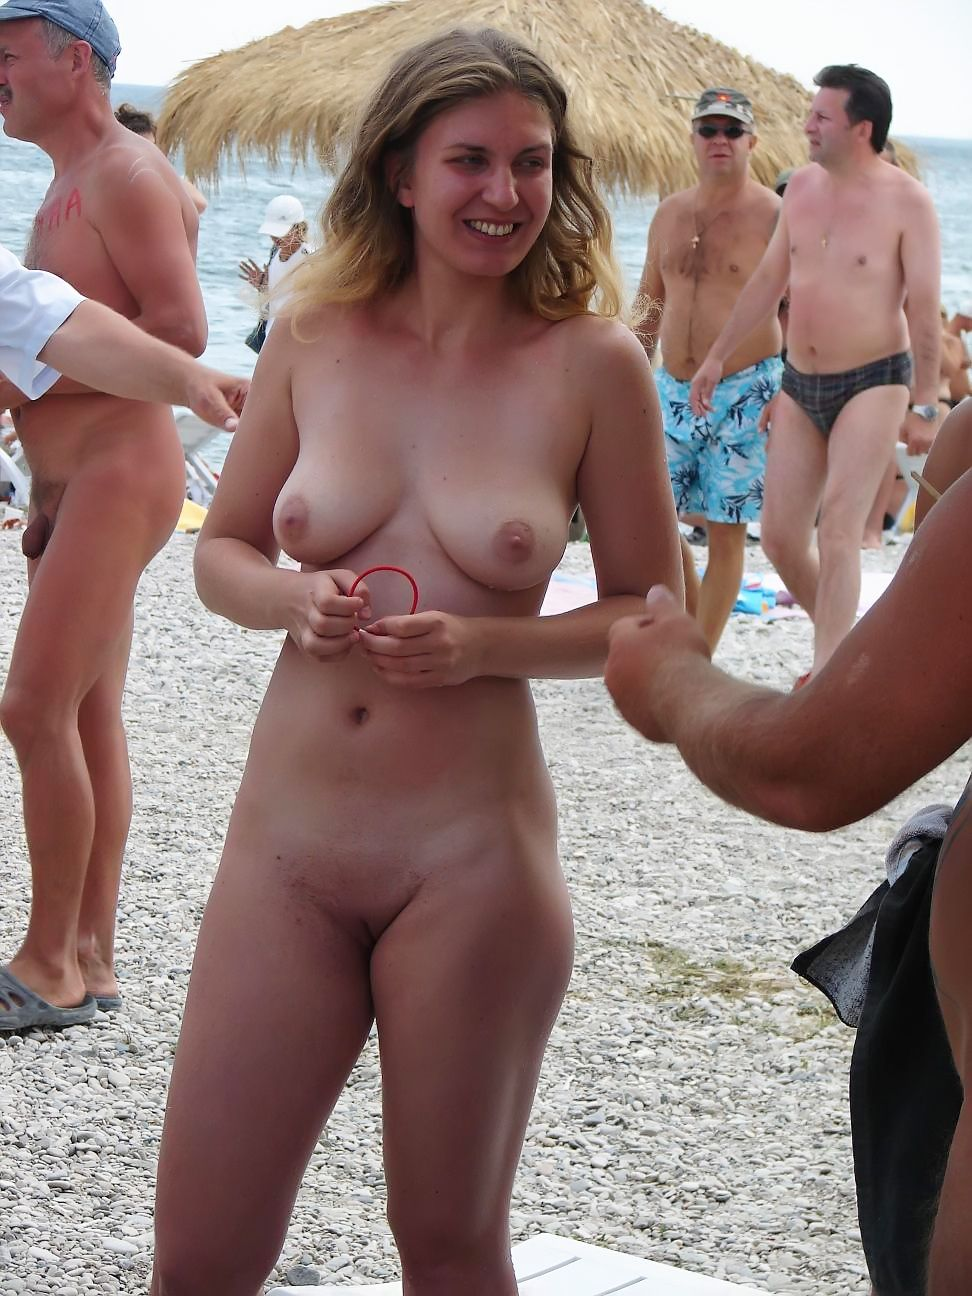 My Favorite Naturist Httpdowluck61Tumblrcom Only My -2392